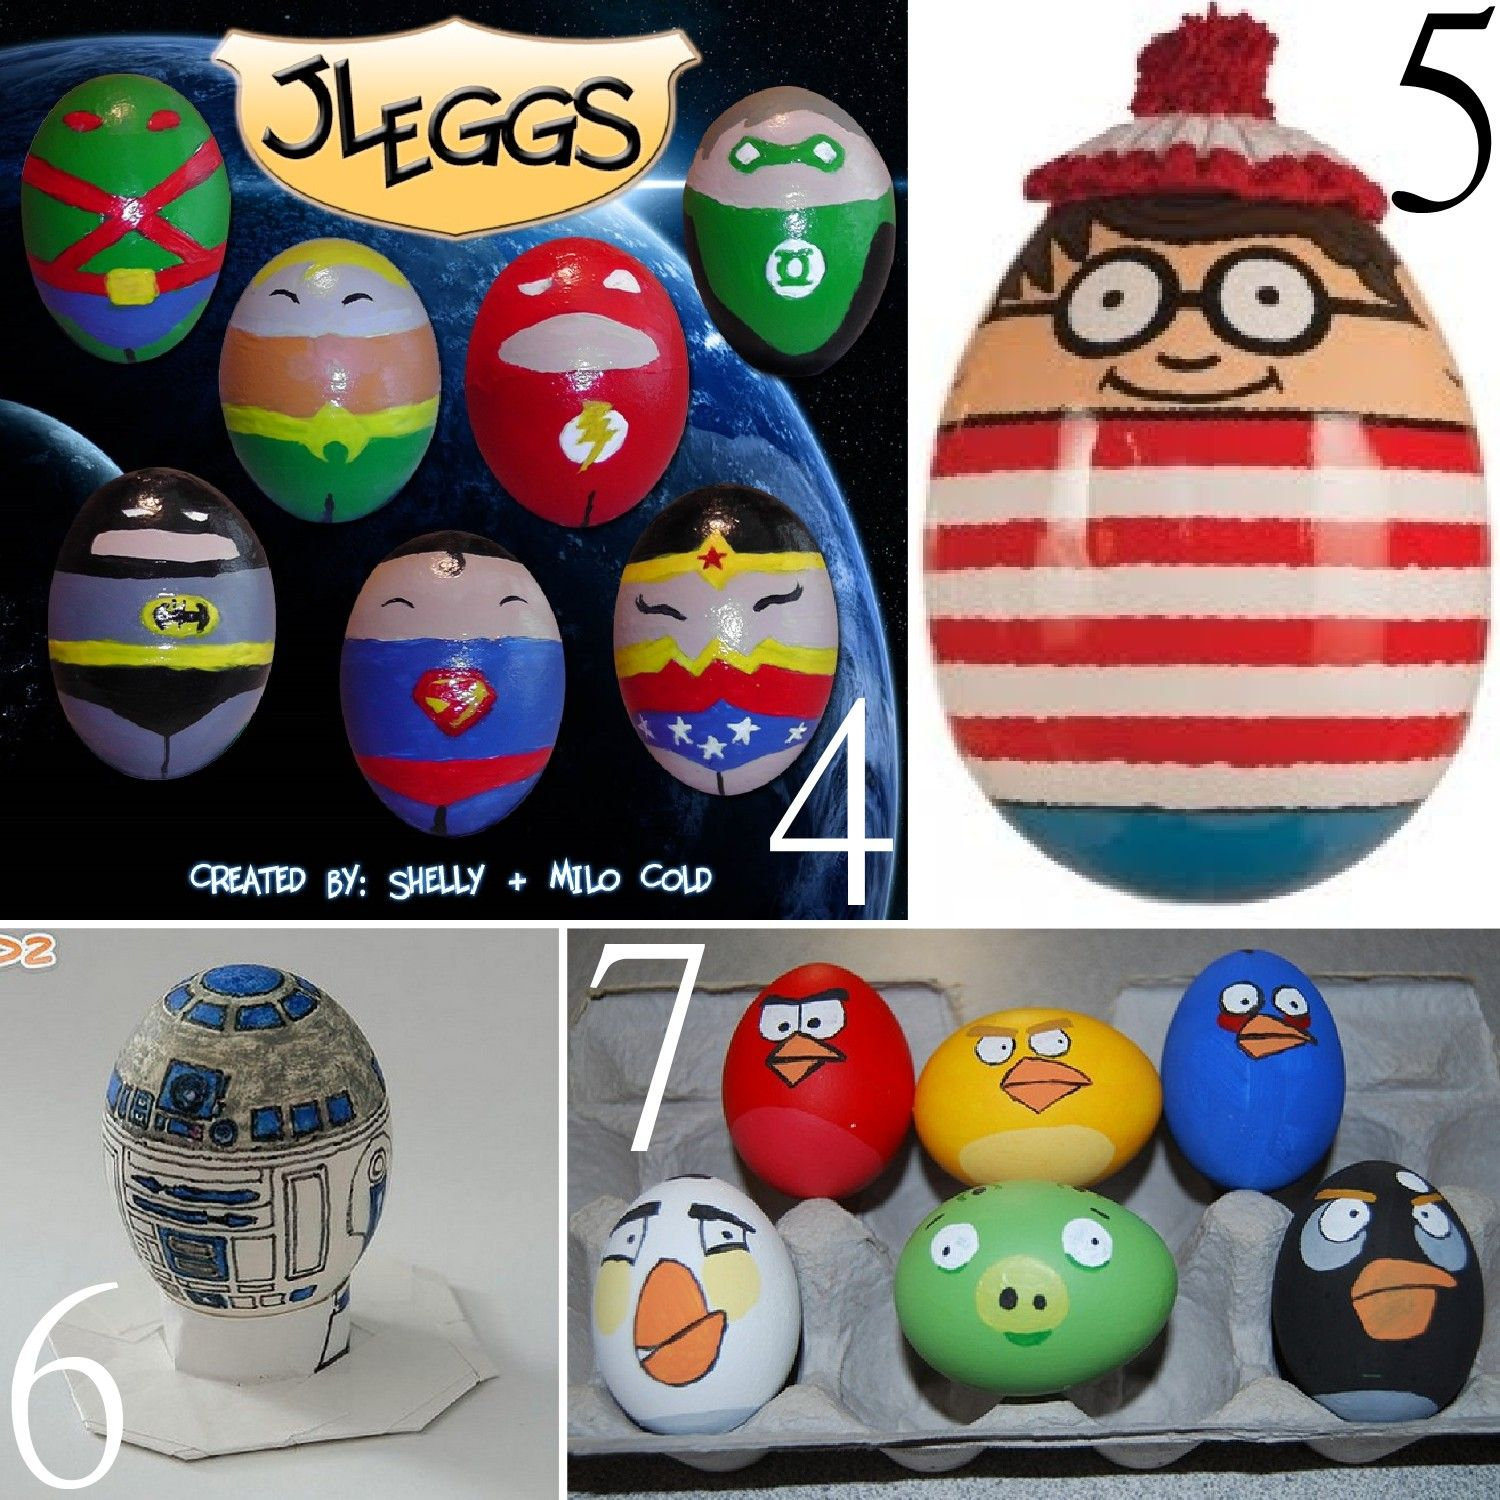 The scrap shoppe 17 unusual easter egg character ideas for Easter egg ideas